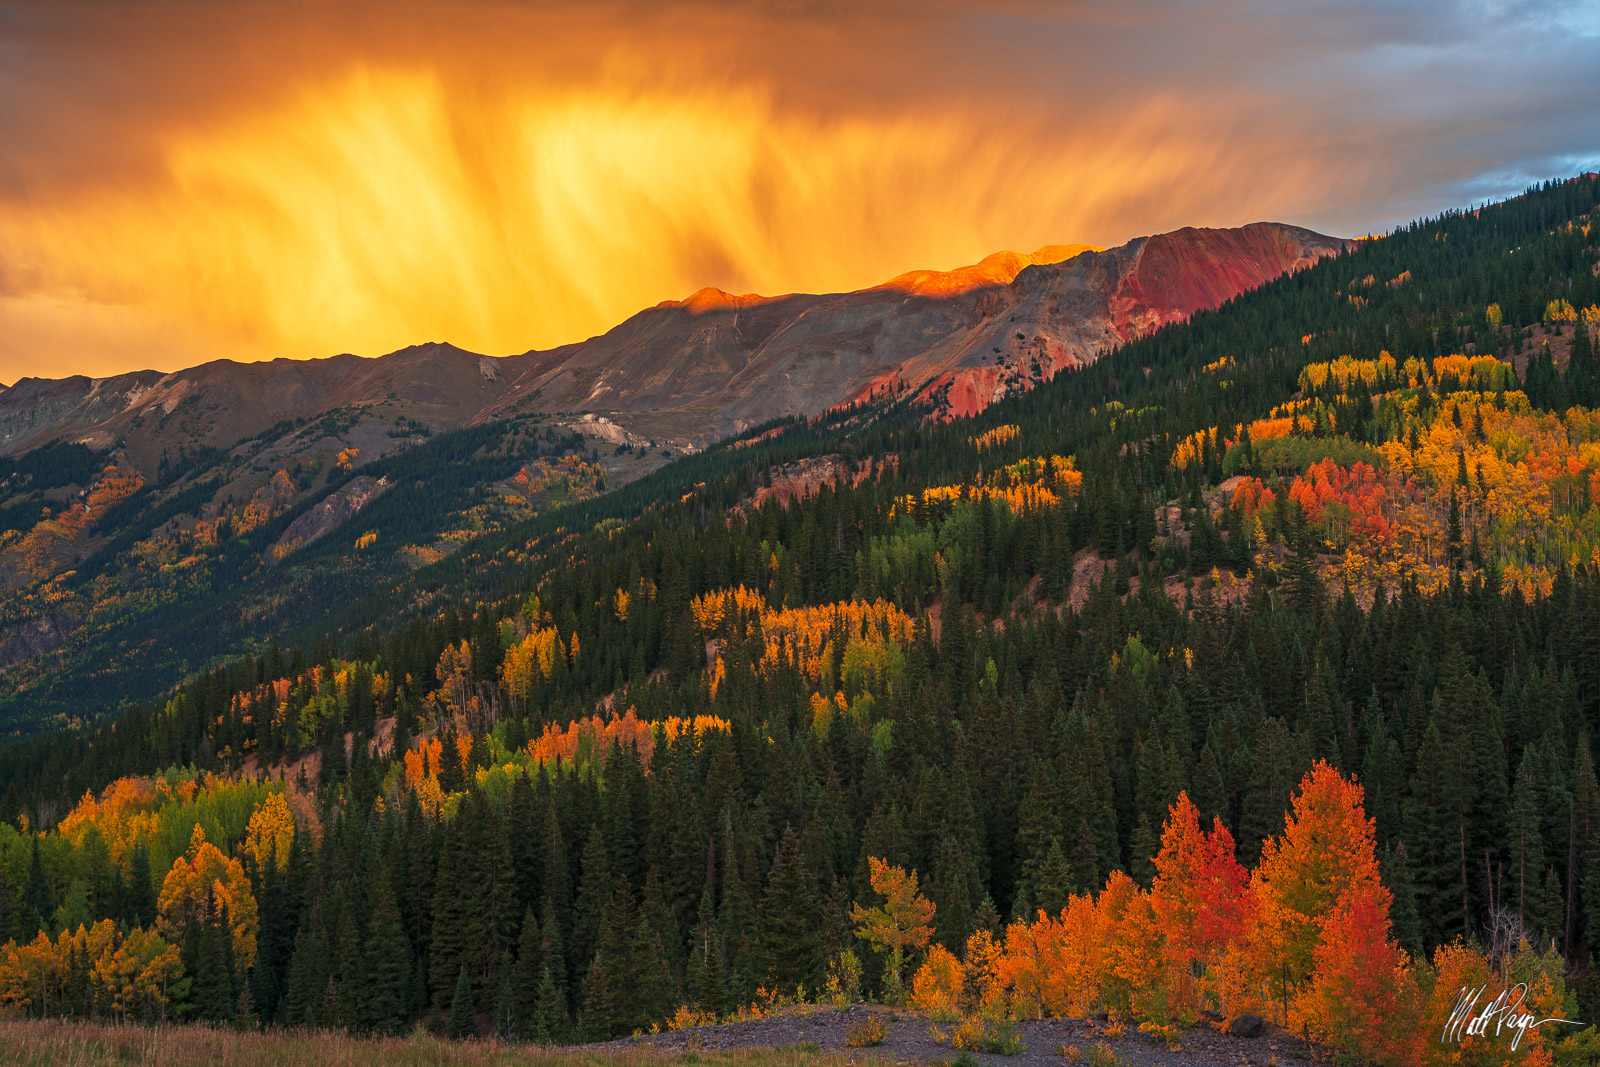 Aspen Trees, Autumn, Clouds, Colorado, Fall, Fall Colors, Landscape, Mountains, Red Mountain Pass, San Juan Mountains, storm, Ouray, Silverton, photo